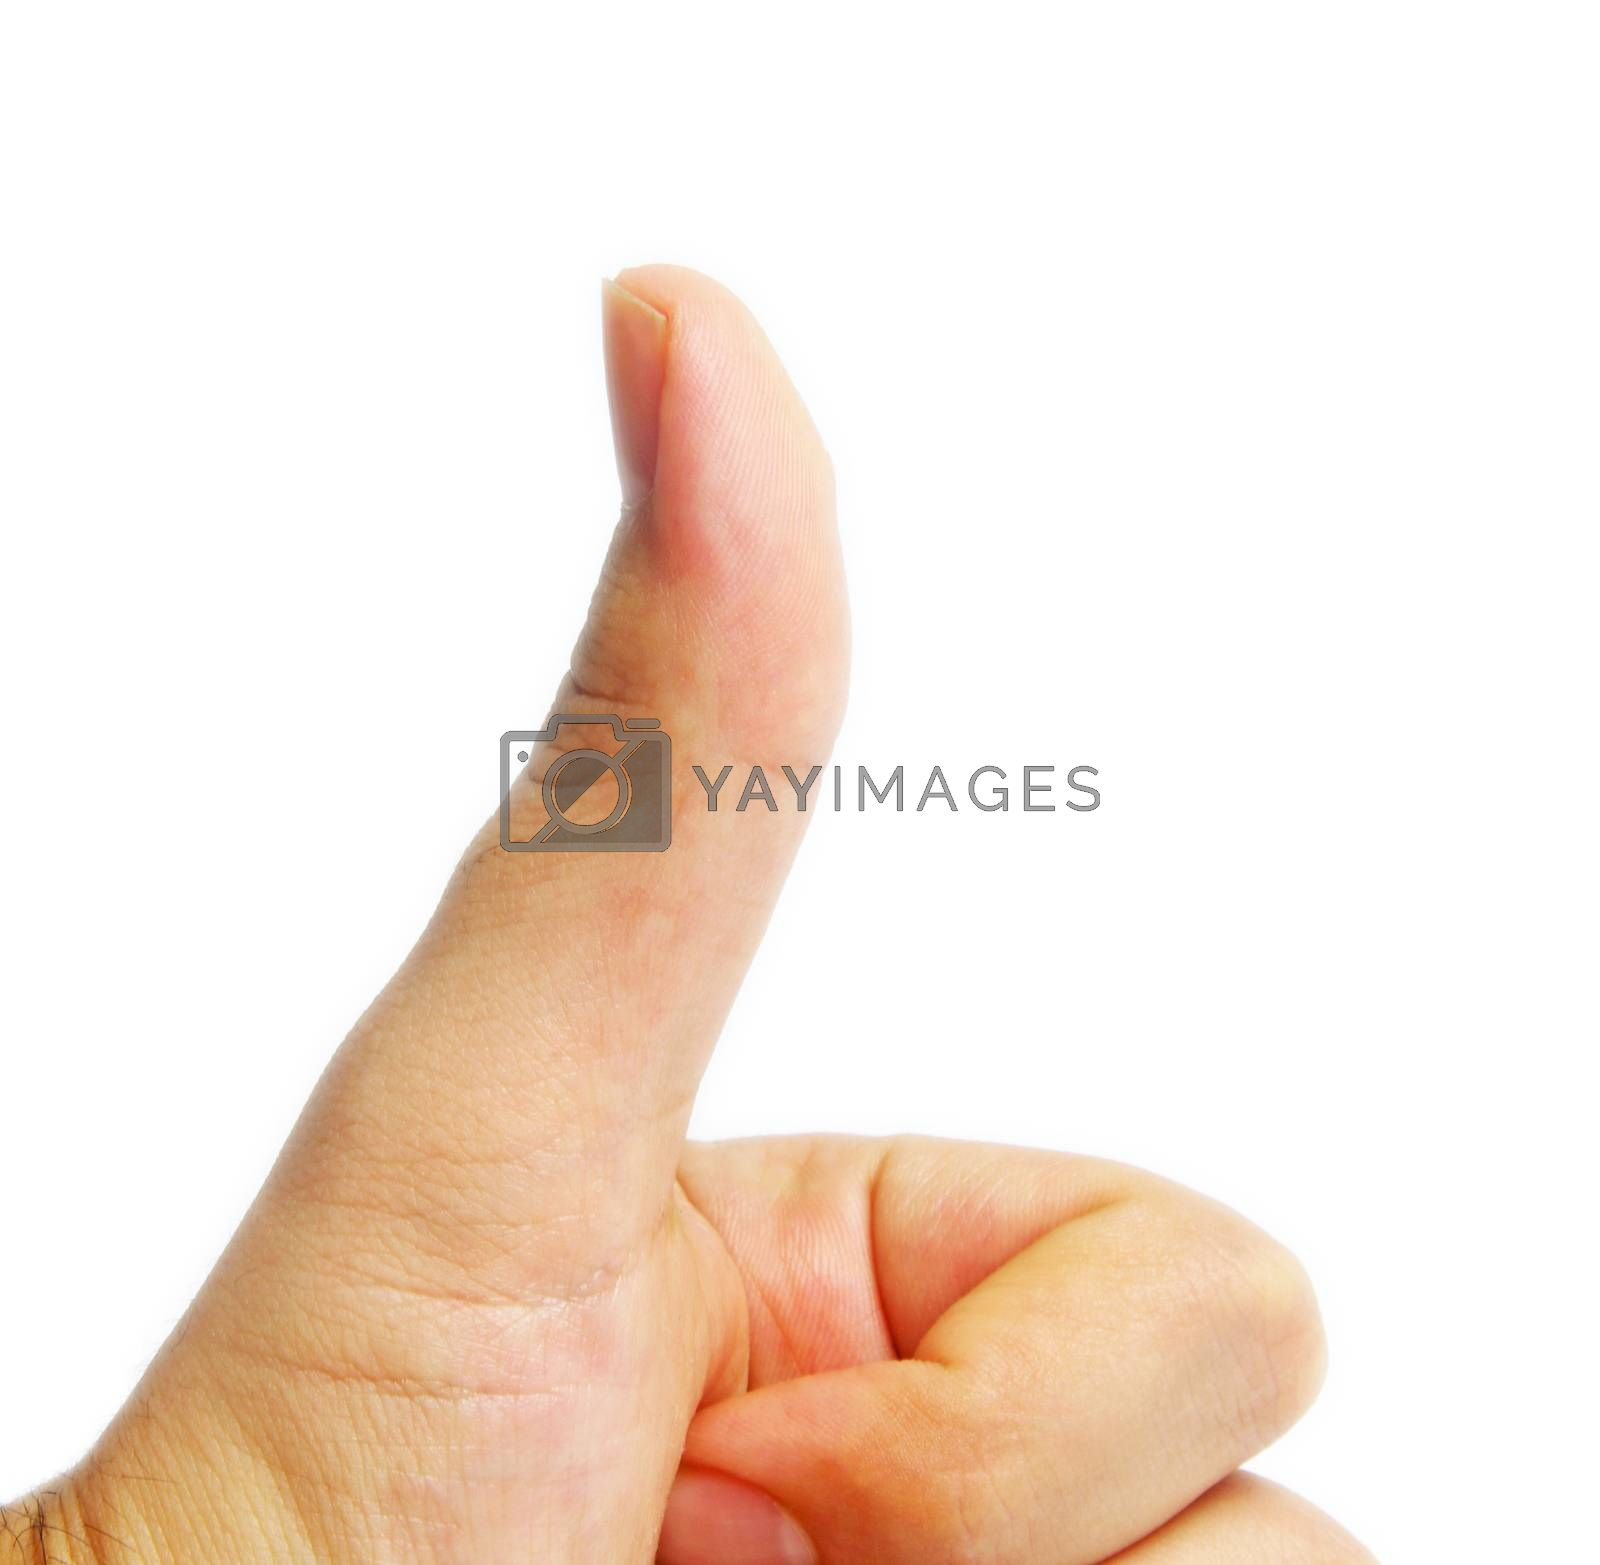 thumbs up on white surface